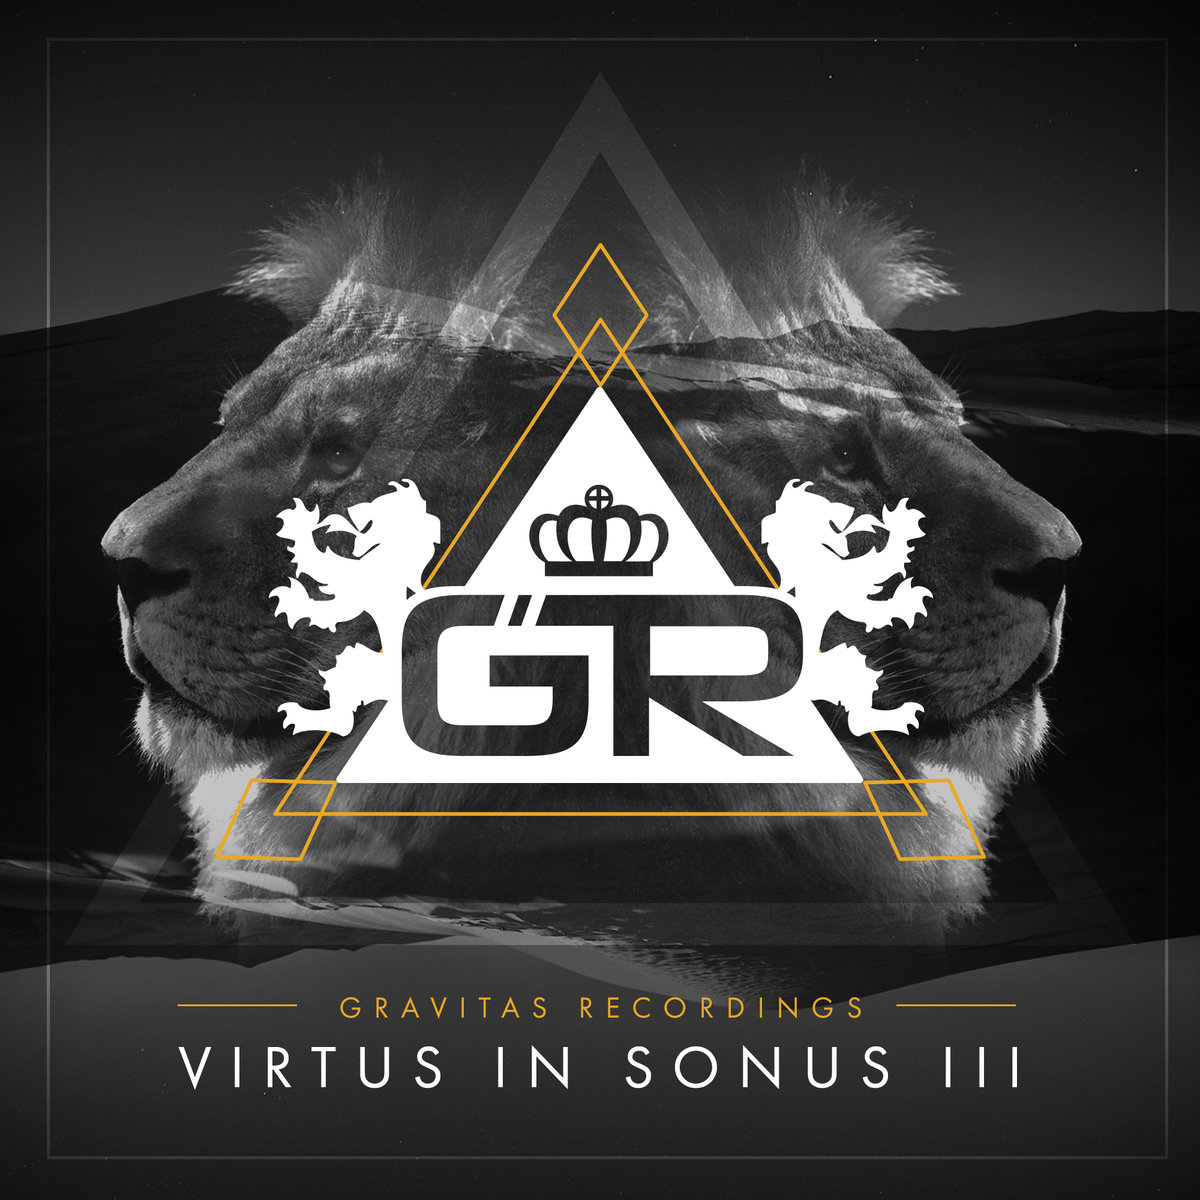 CloZee - On The Riverbank @ 'Virtus In Sonus III' album (Austin)